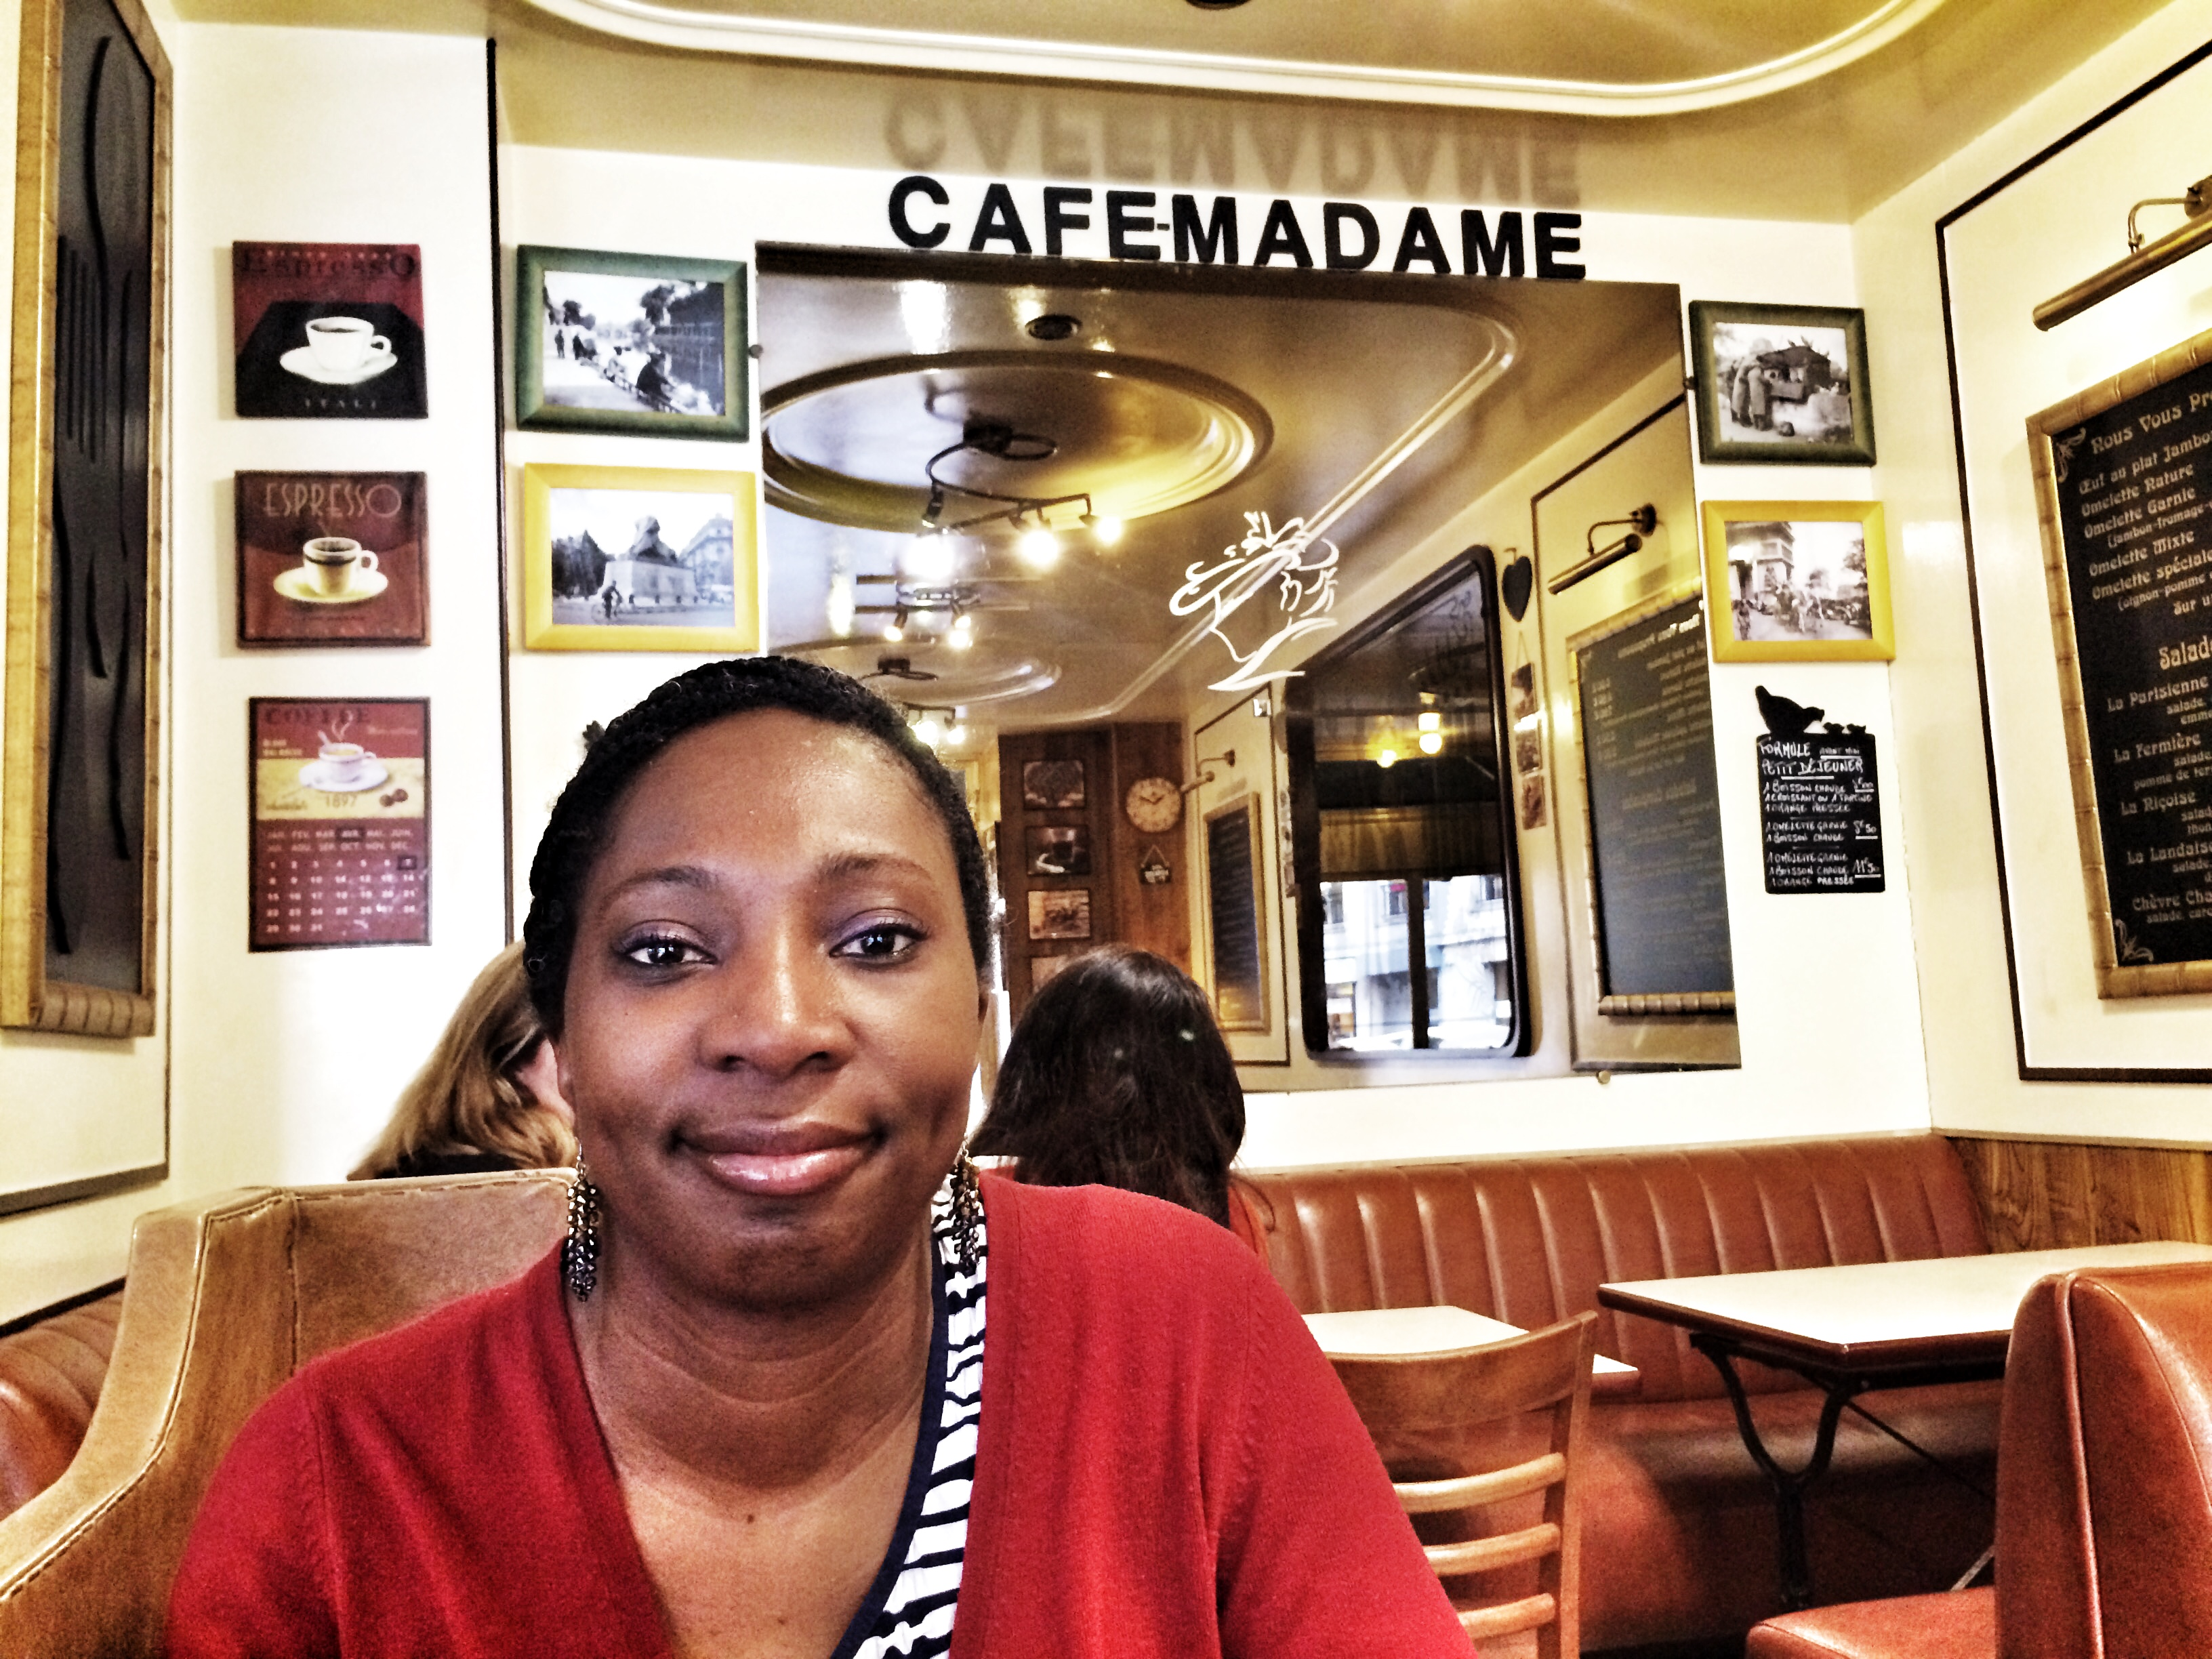 Cafe Madame - a fantastic cafe near Saint Sulpice in Paris, France